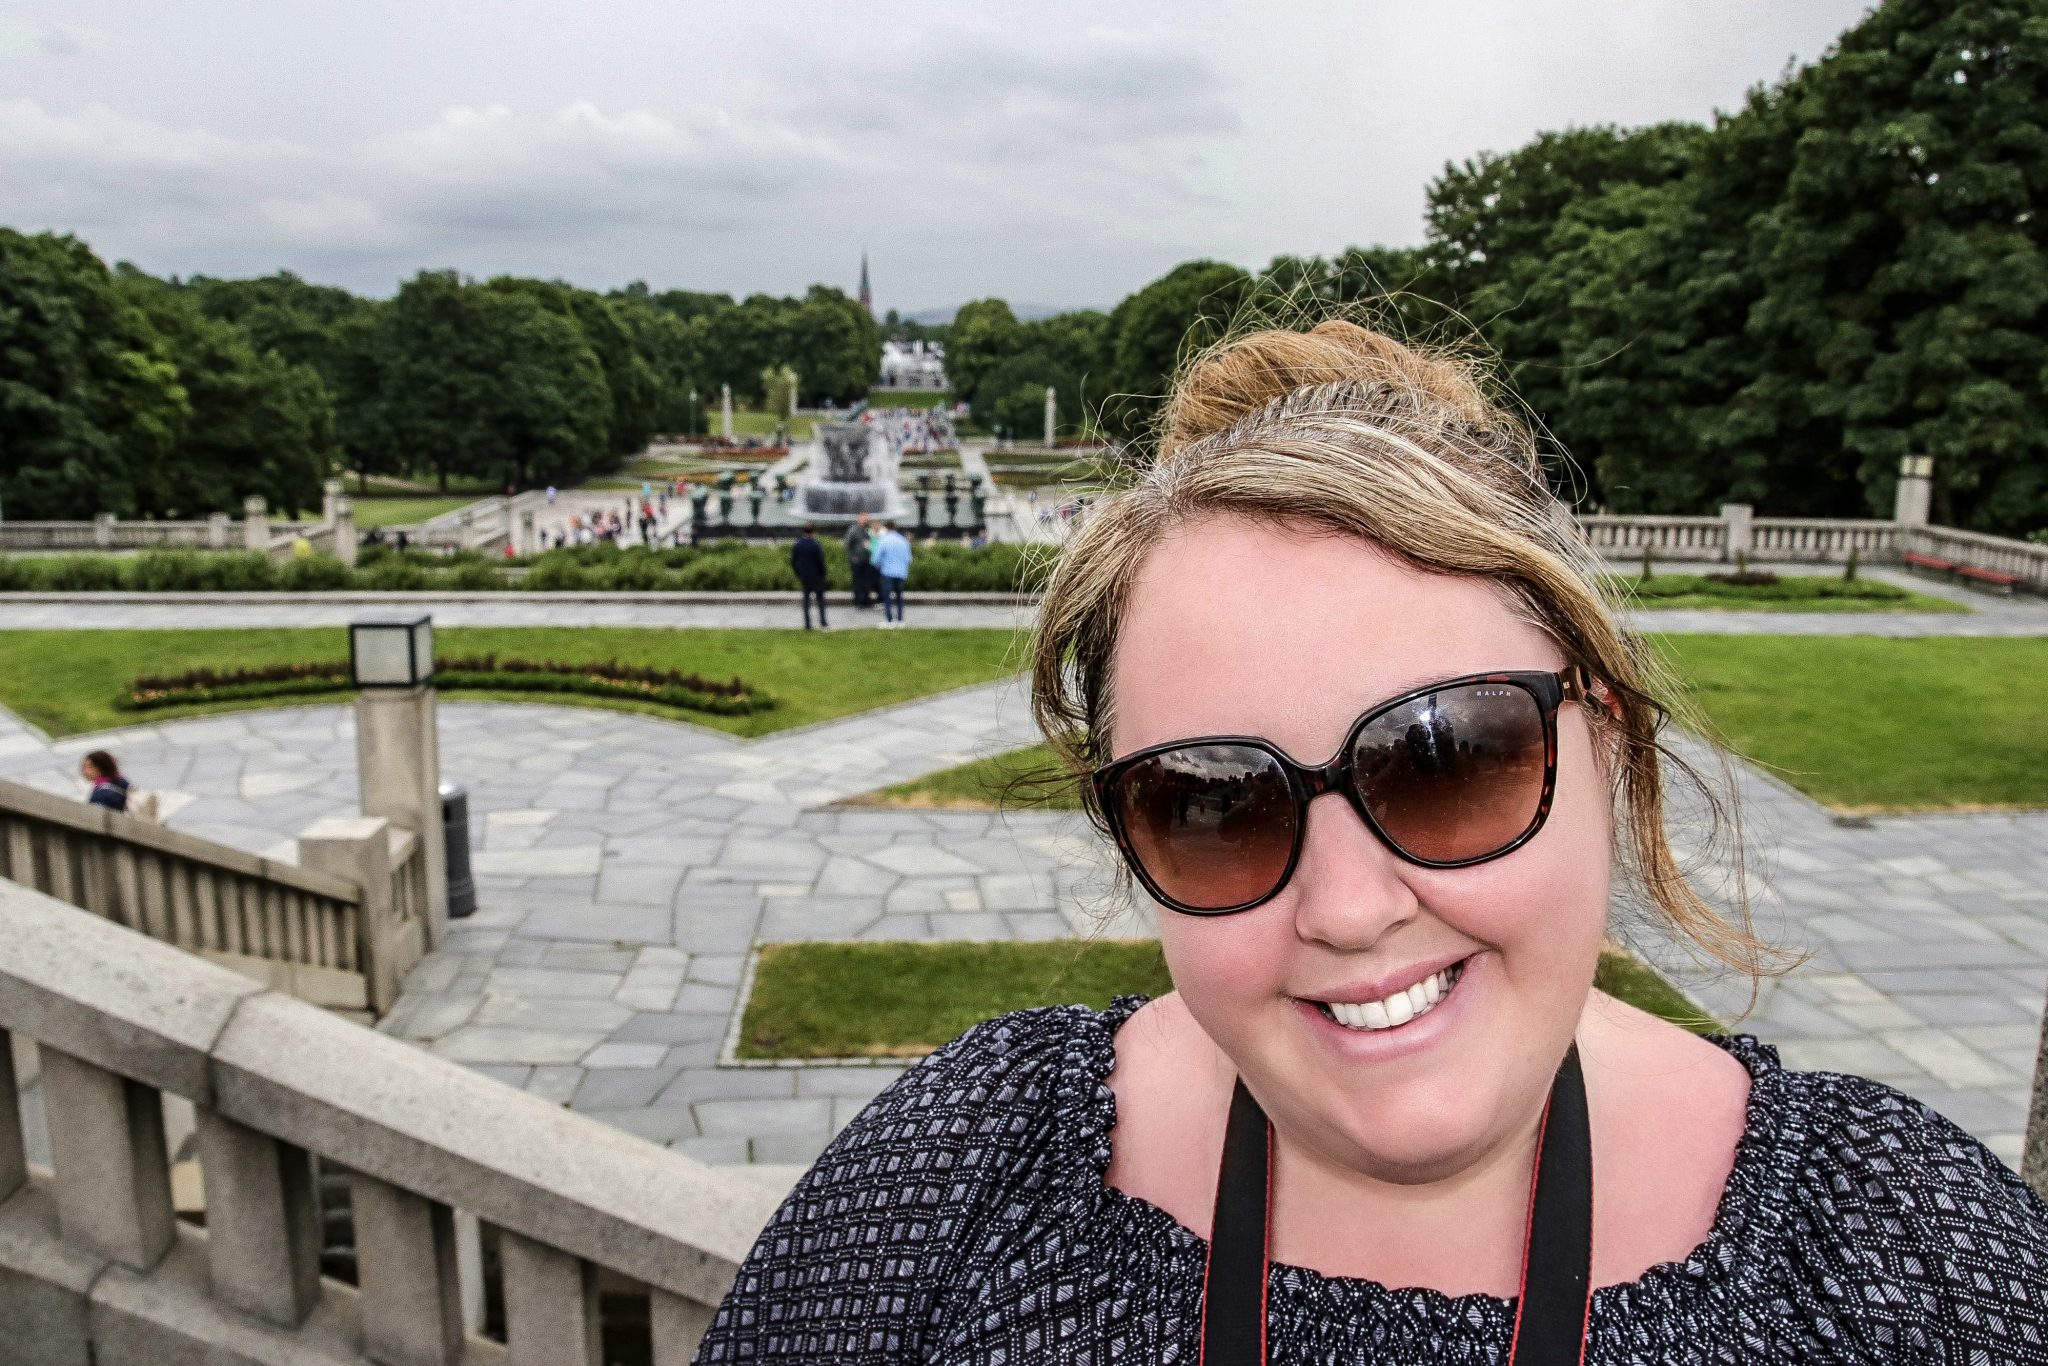 Vicky at Vigeland Sculpture Park, Oslo, Norway